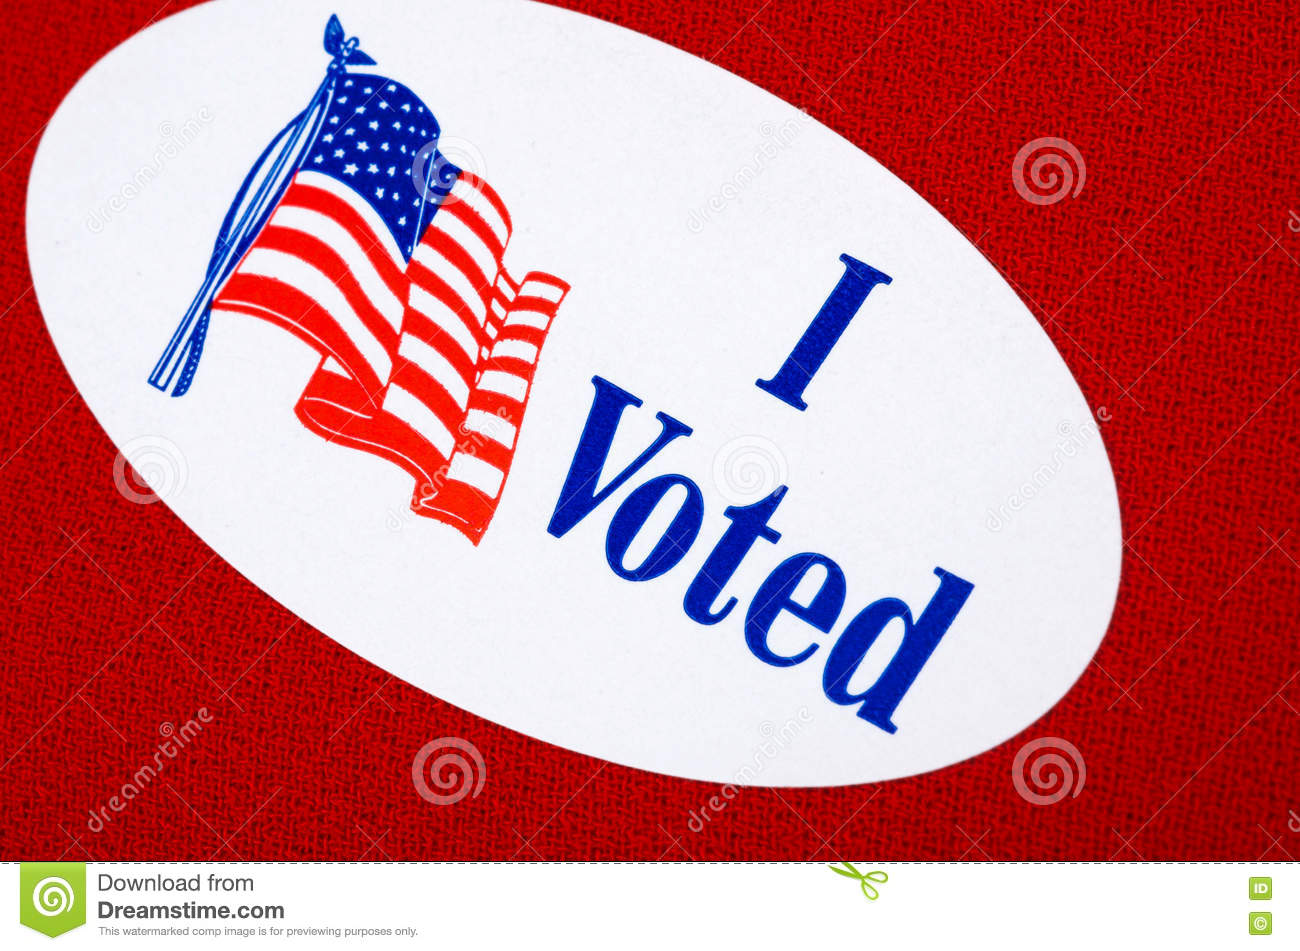 """Voters Remorse >> """"I Voted"""" Stickers On Red And Blue Stock Image   CartoonDealer.com #79947055"""